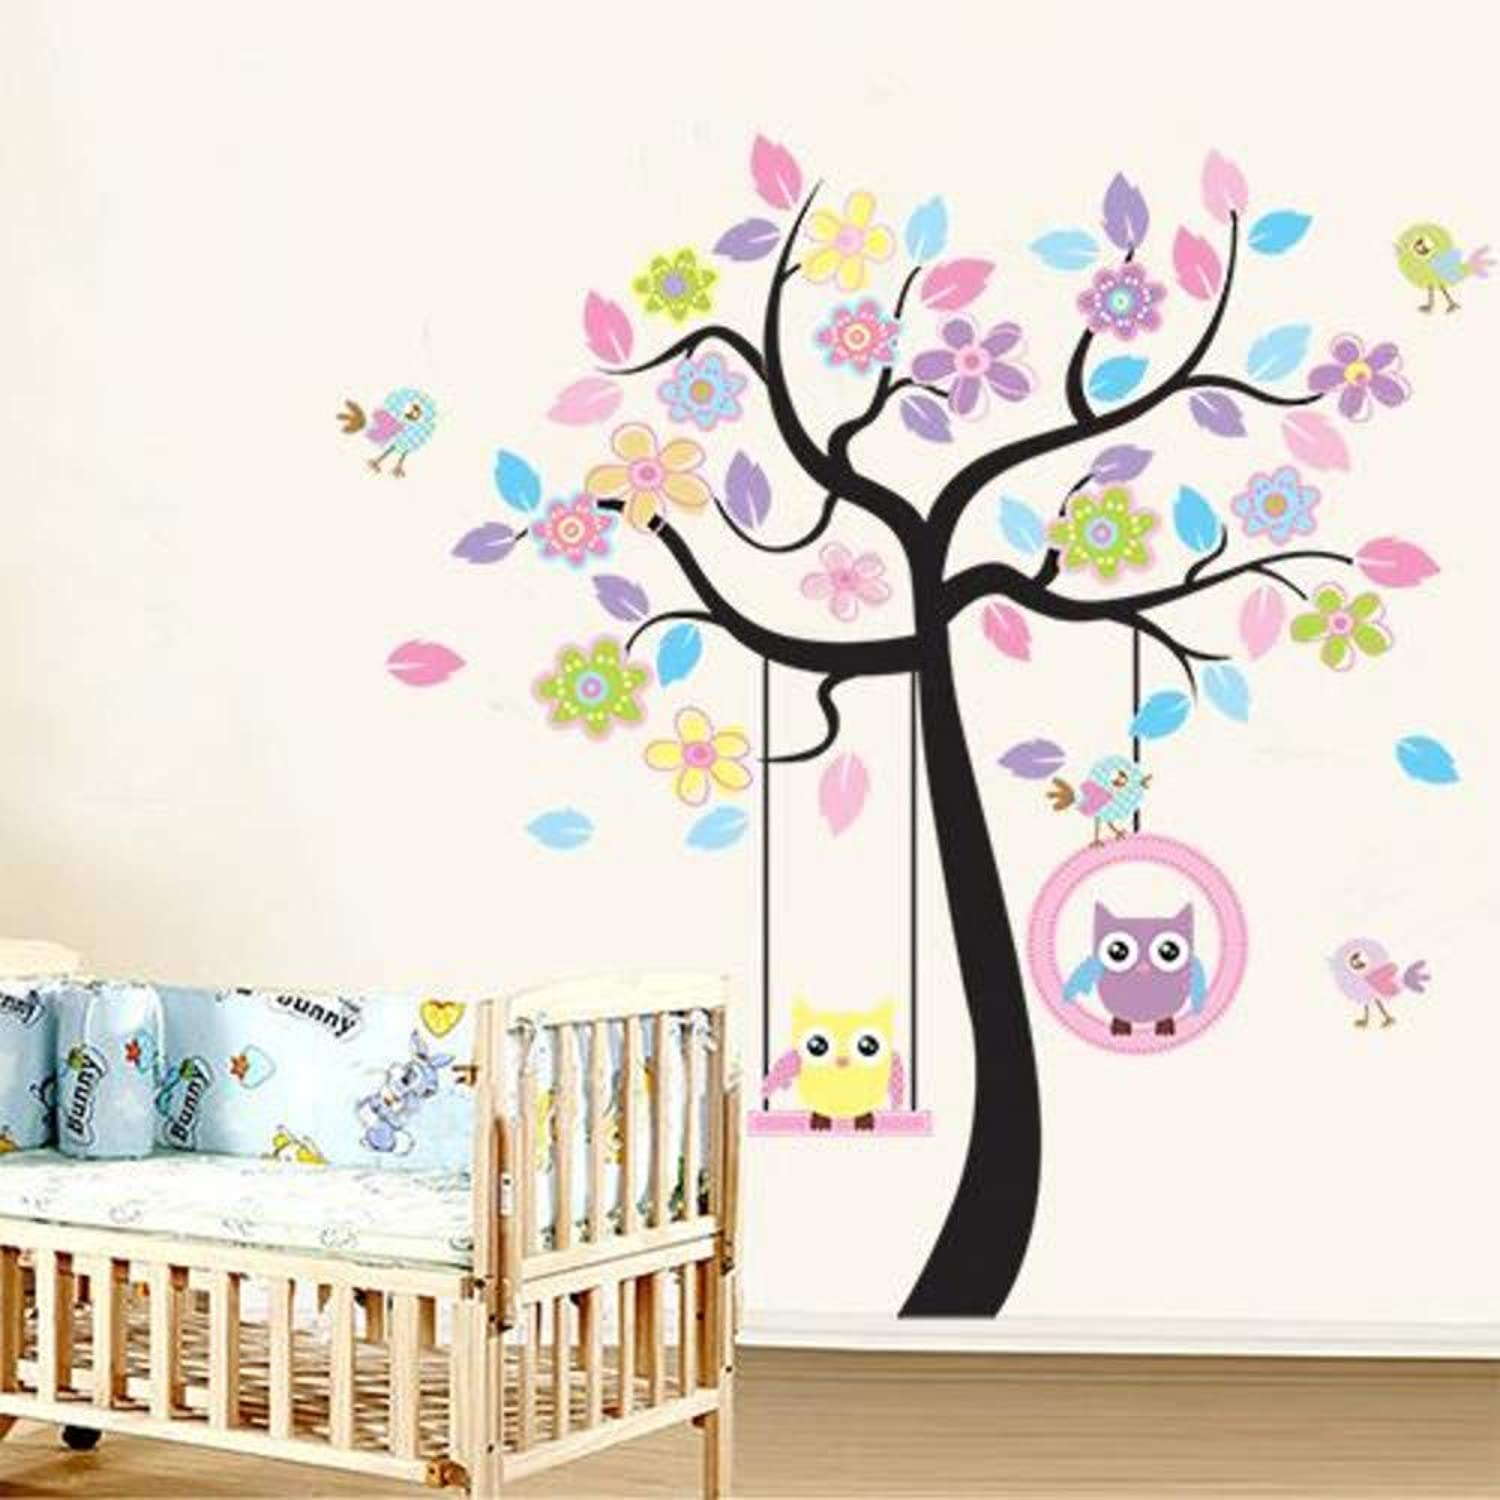 Zffmss 3D Vinyl Wall Stickers 2Pcs Set colorful Tree And Owls Home Decor Giant Wall Decals For Kids Rooms 60X90Cm